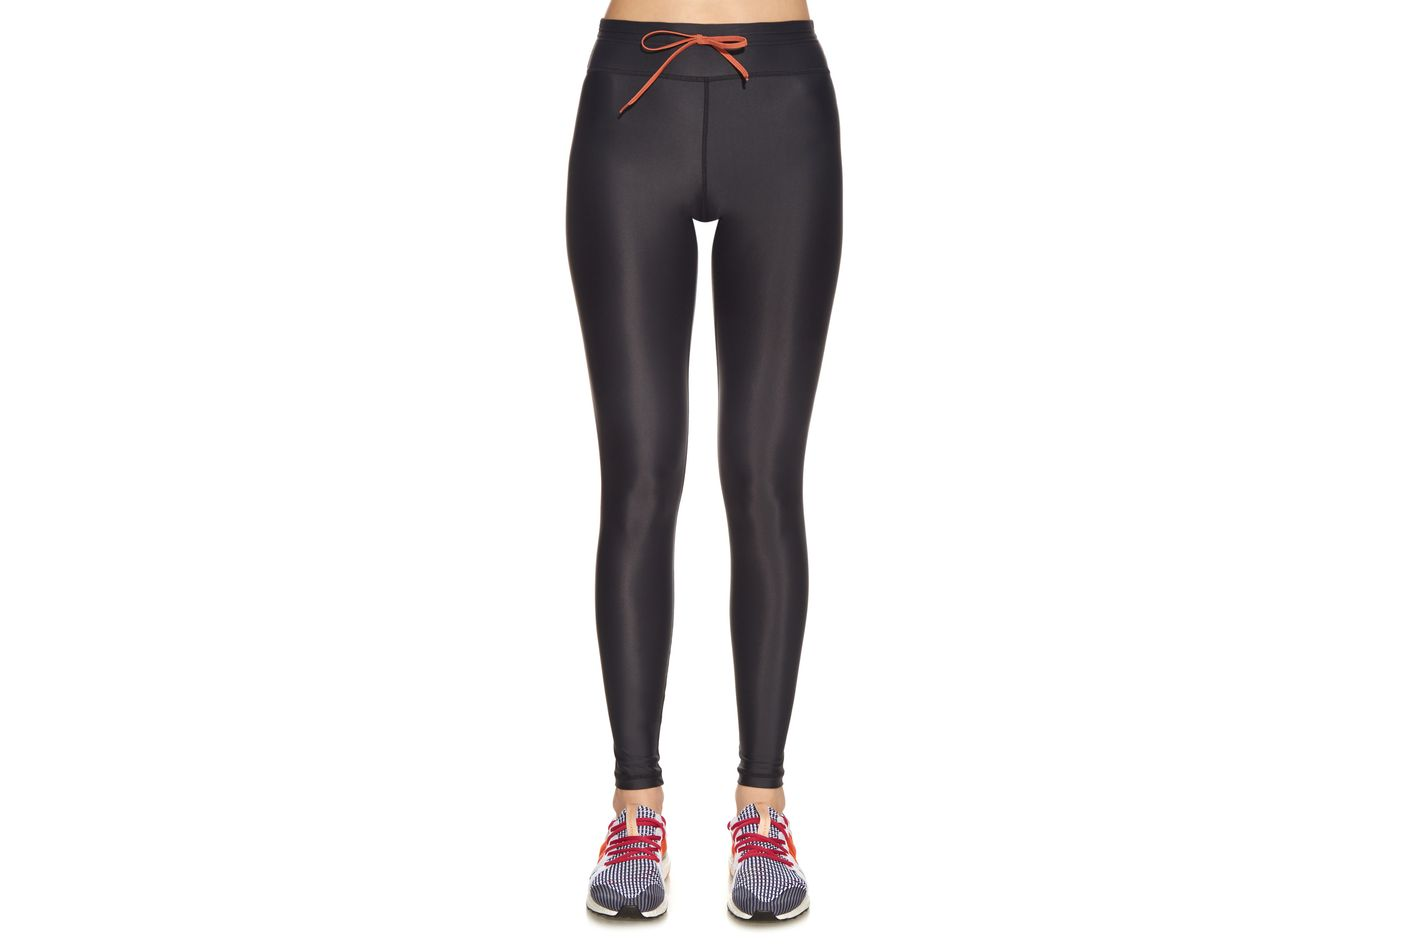 The Upside Indigo Performance Leggings